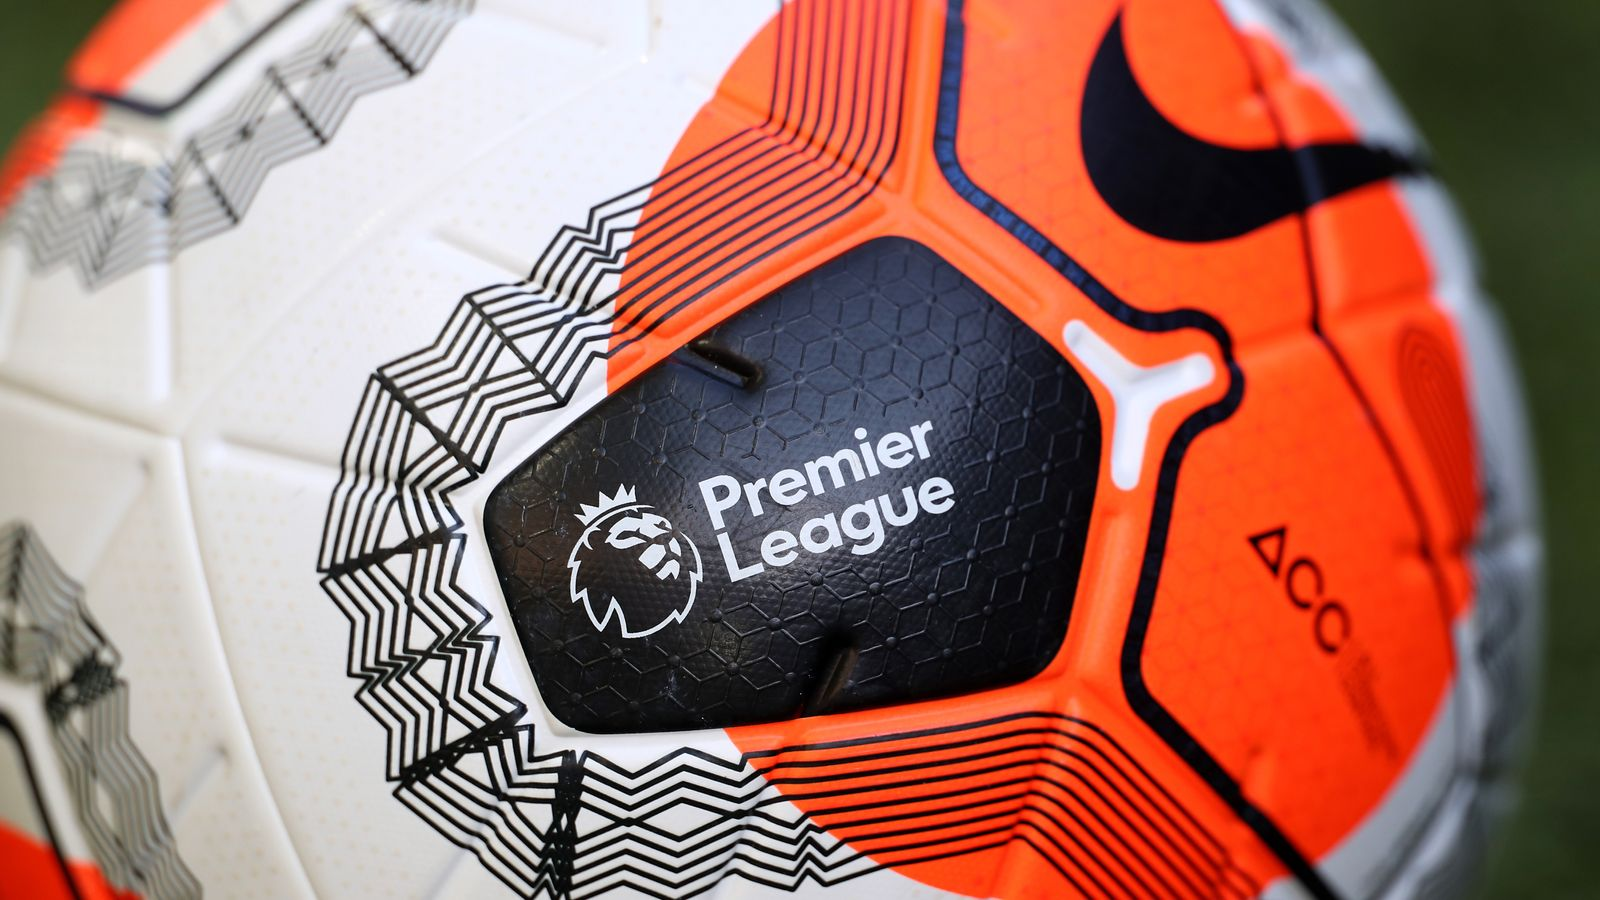 Premier League: No plans to play matches abroad or extend season to 39 games